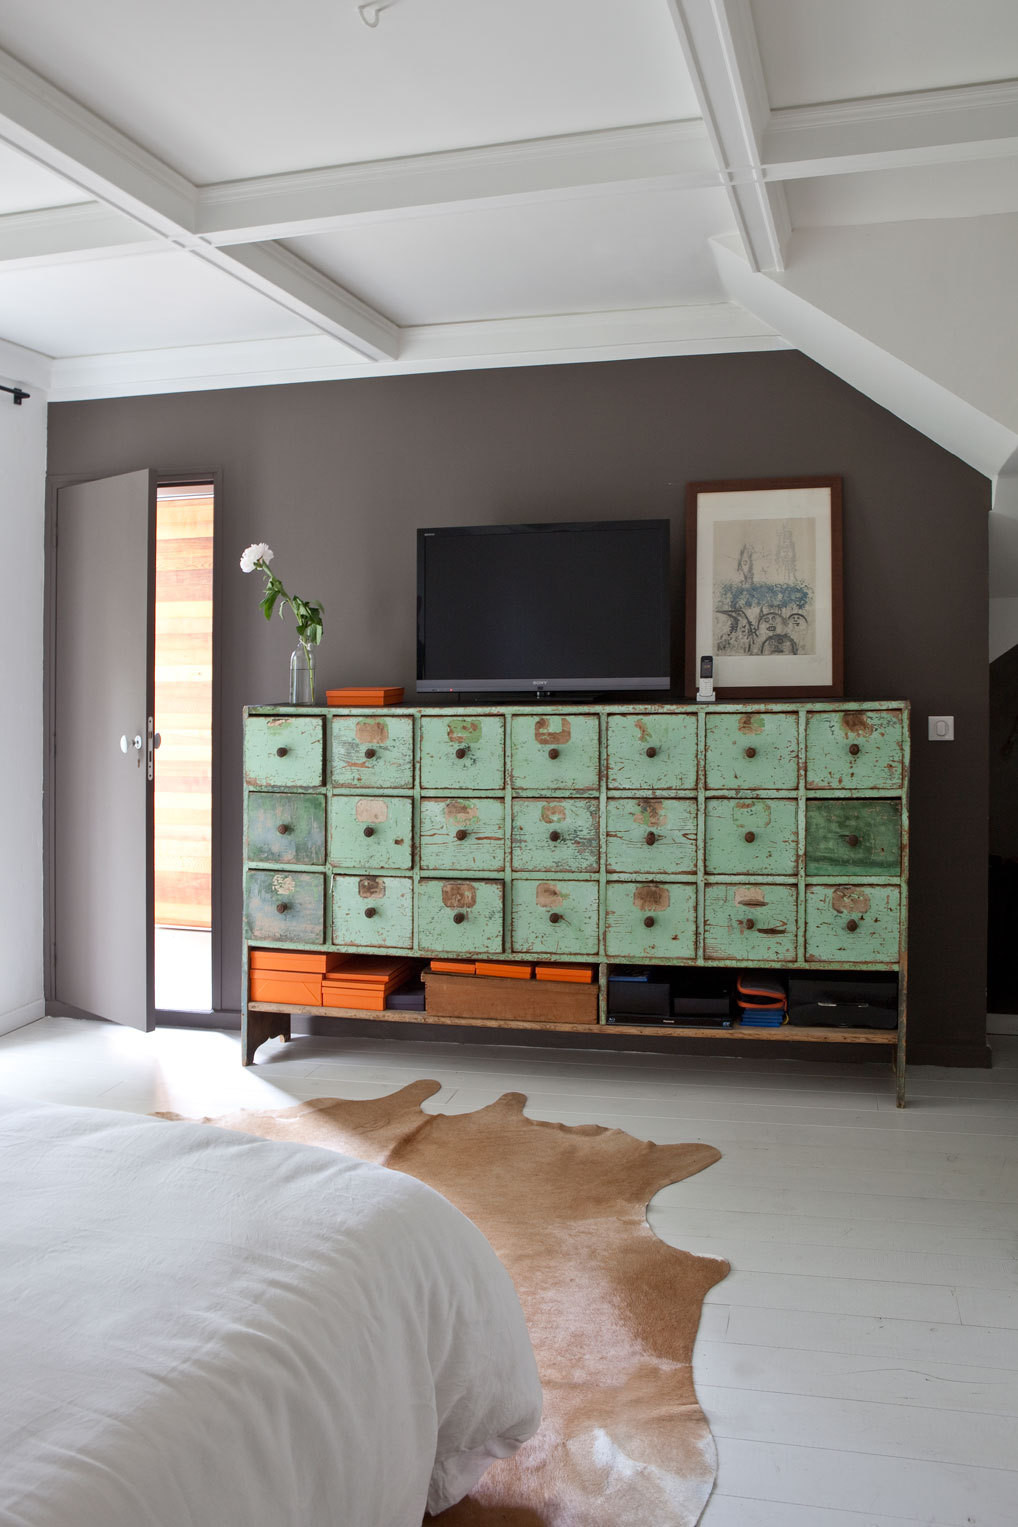 A green chest of drawers found in L'Isle-sur-la-Sorgue pops against a gray accent wall in the master bedroom.